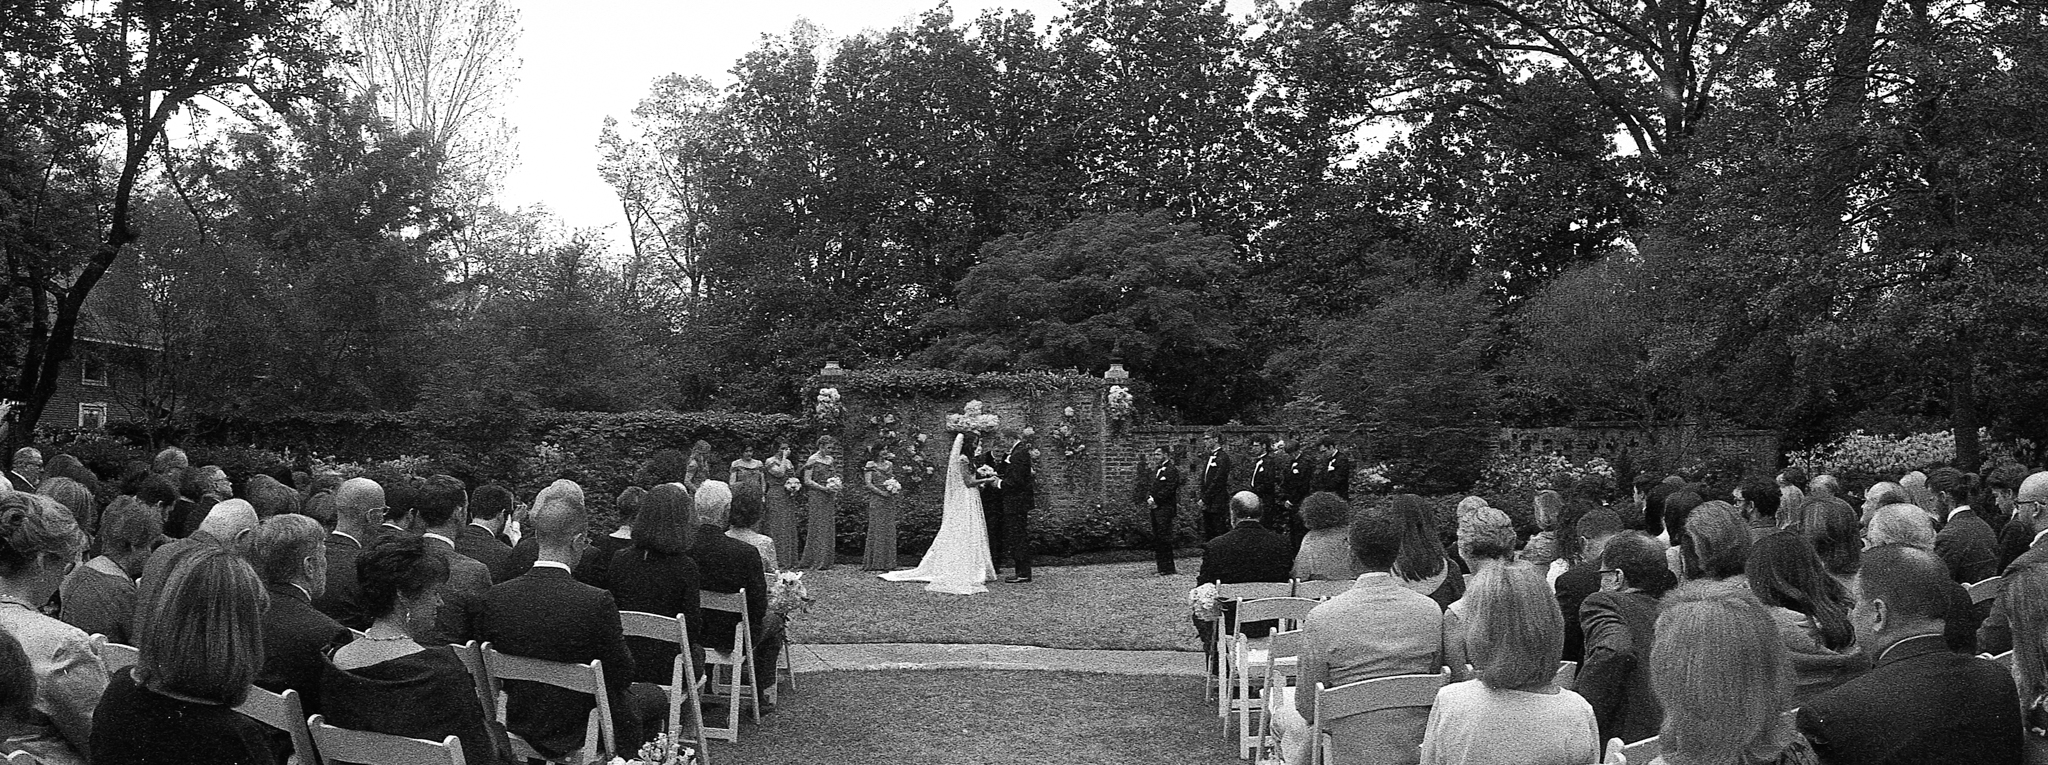 annesdale-wedding-venue-memphis-wedding-photographers-the-warmth-around-you